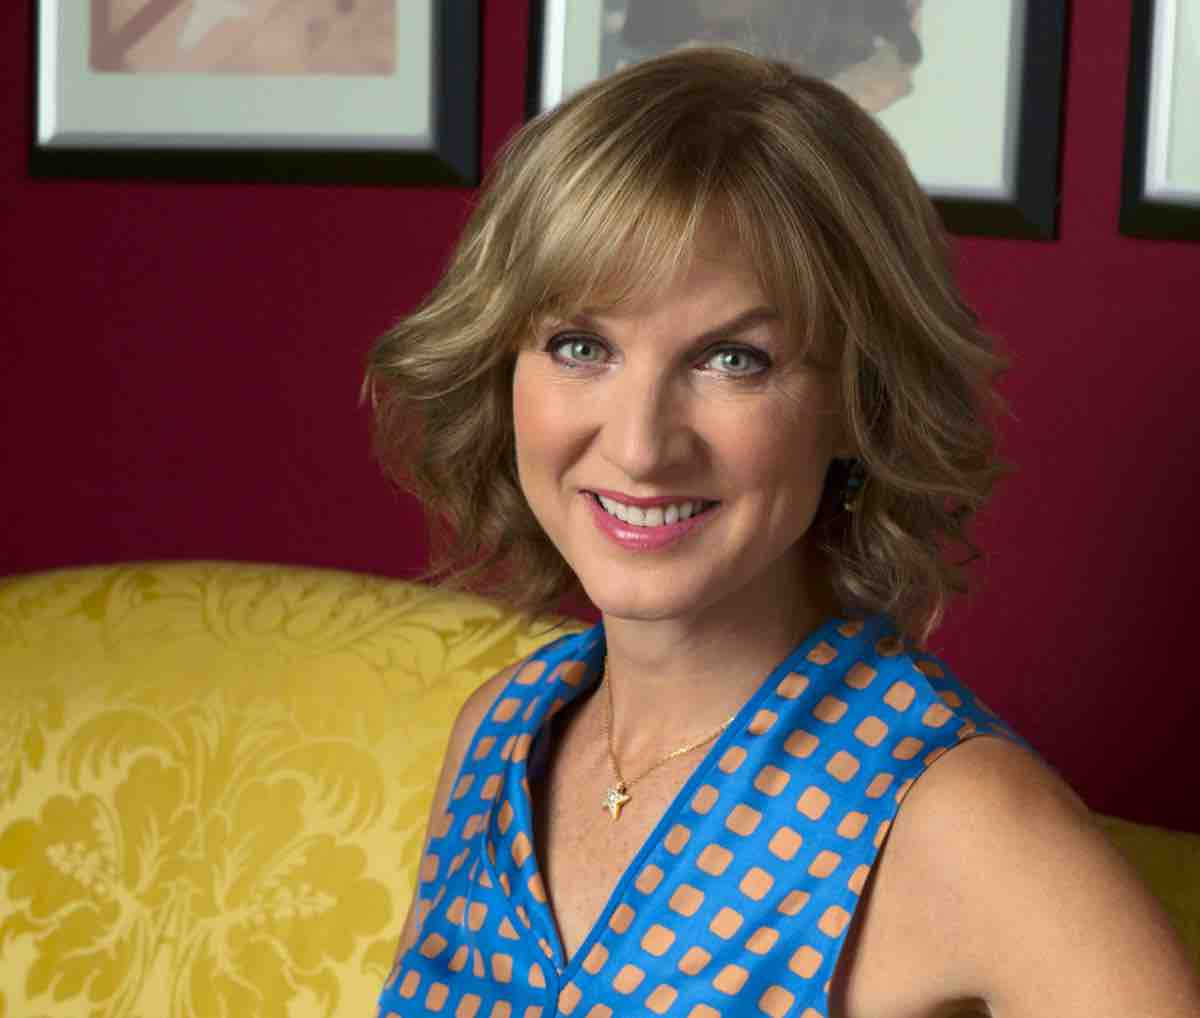 BBC's Fiona Bruce on unearthing treasures on the Antiques Road Show